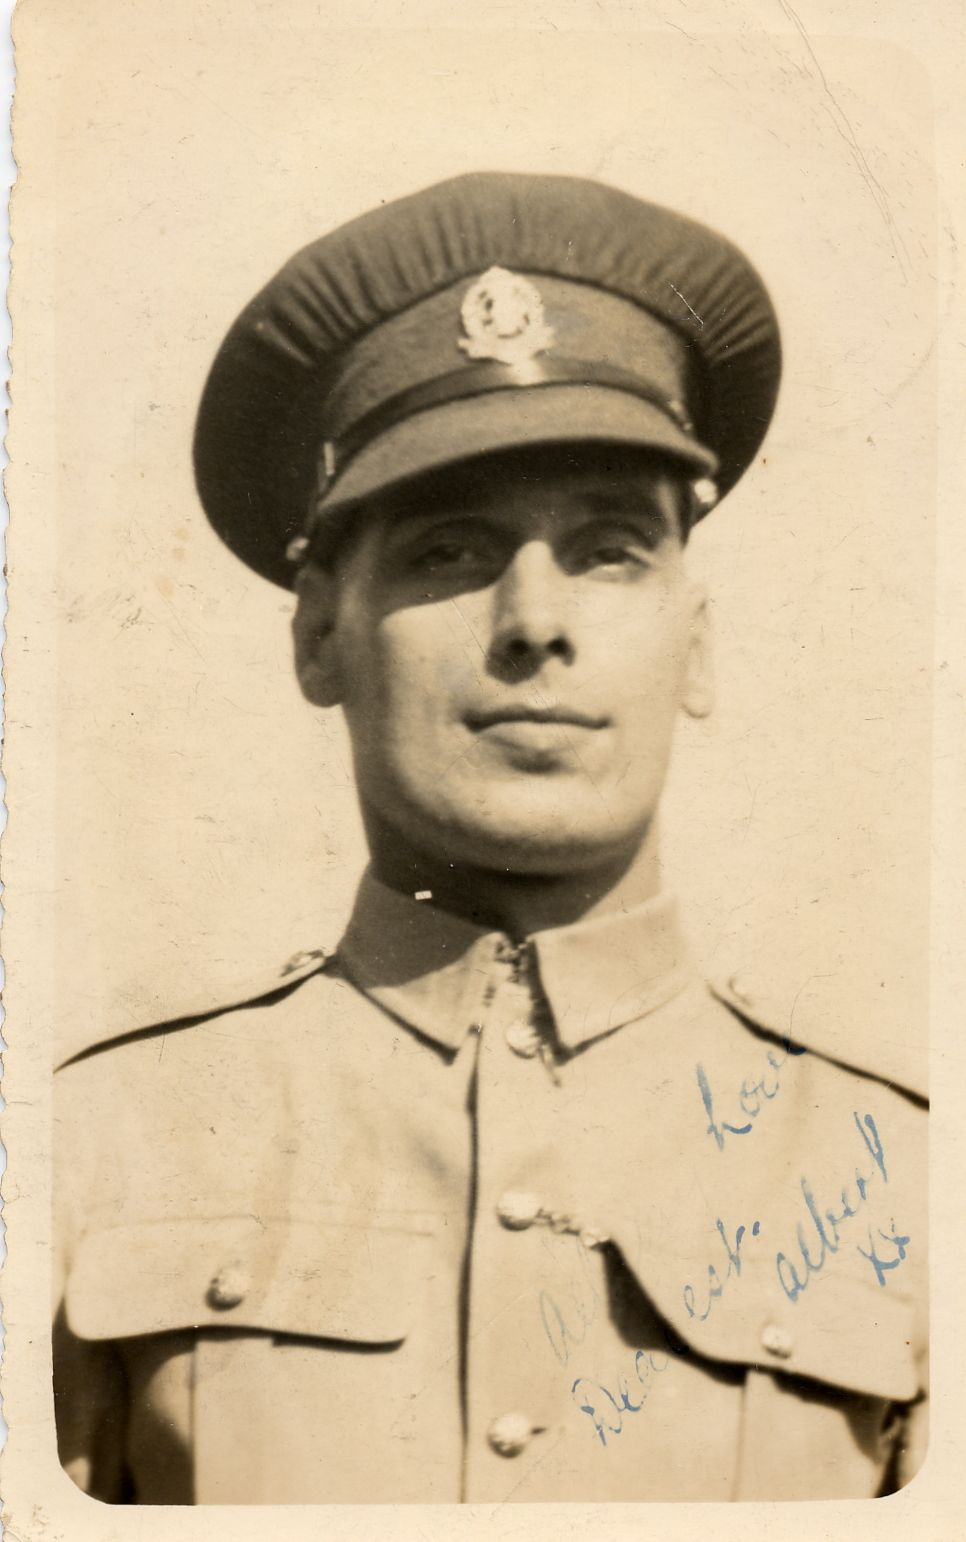 how can i find my fathers military information